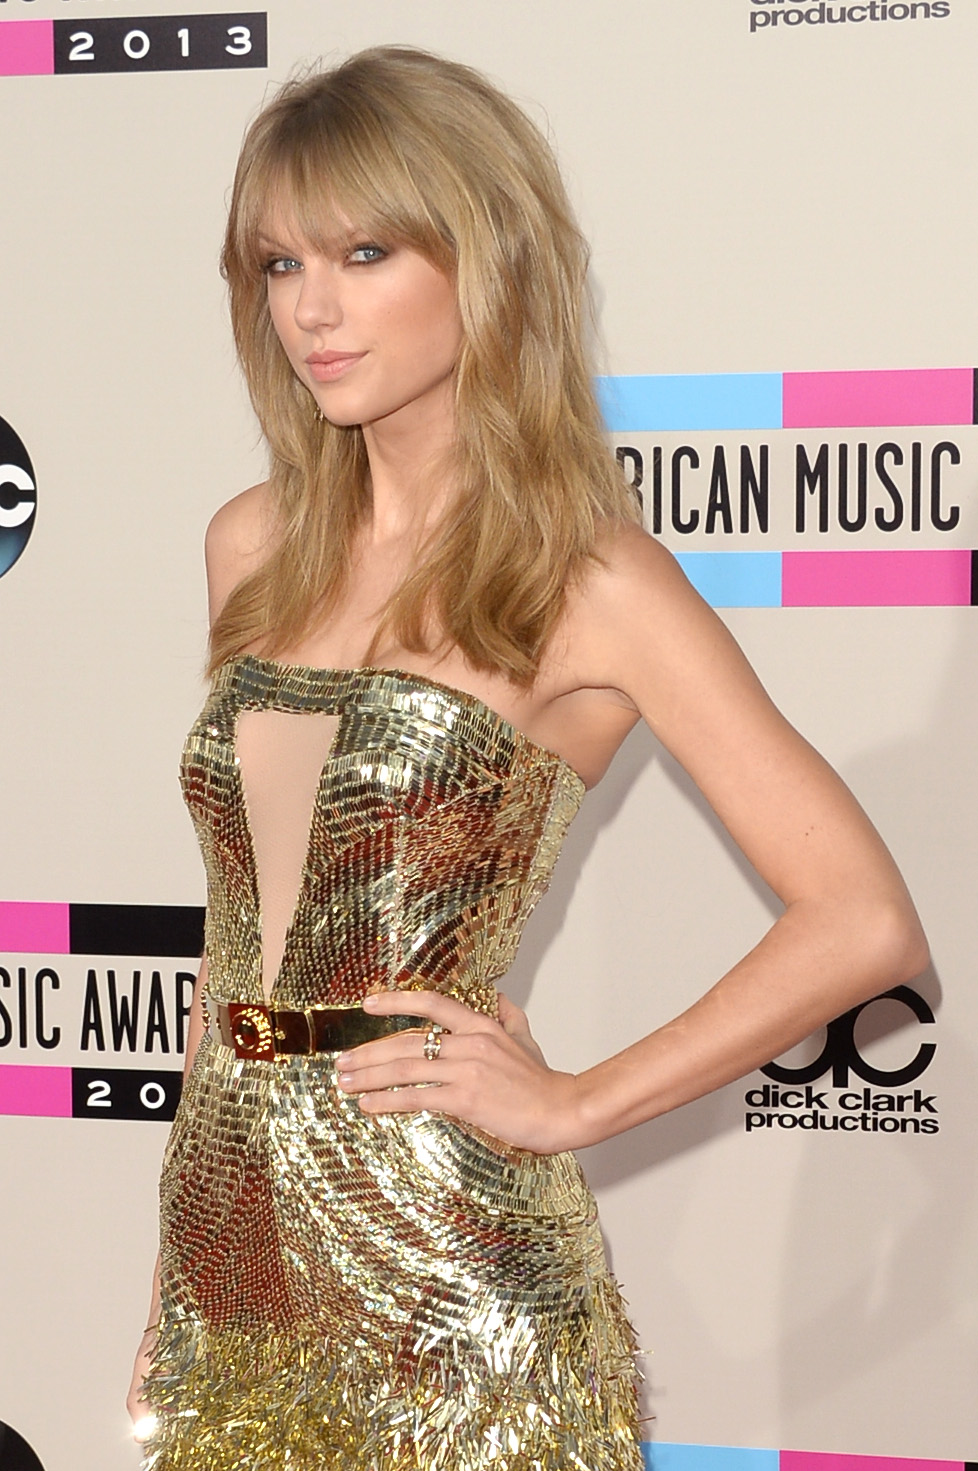 http://taylorpictures.net/albums/app/2013/americanmusicawards/007.jpg